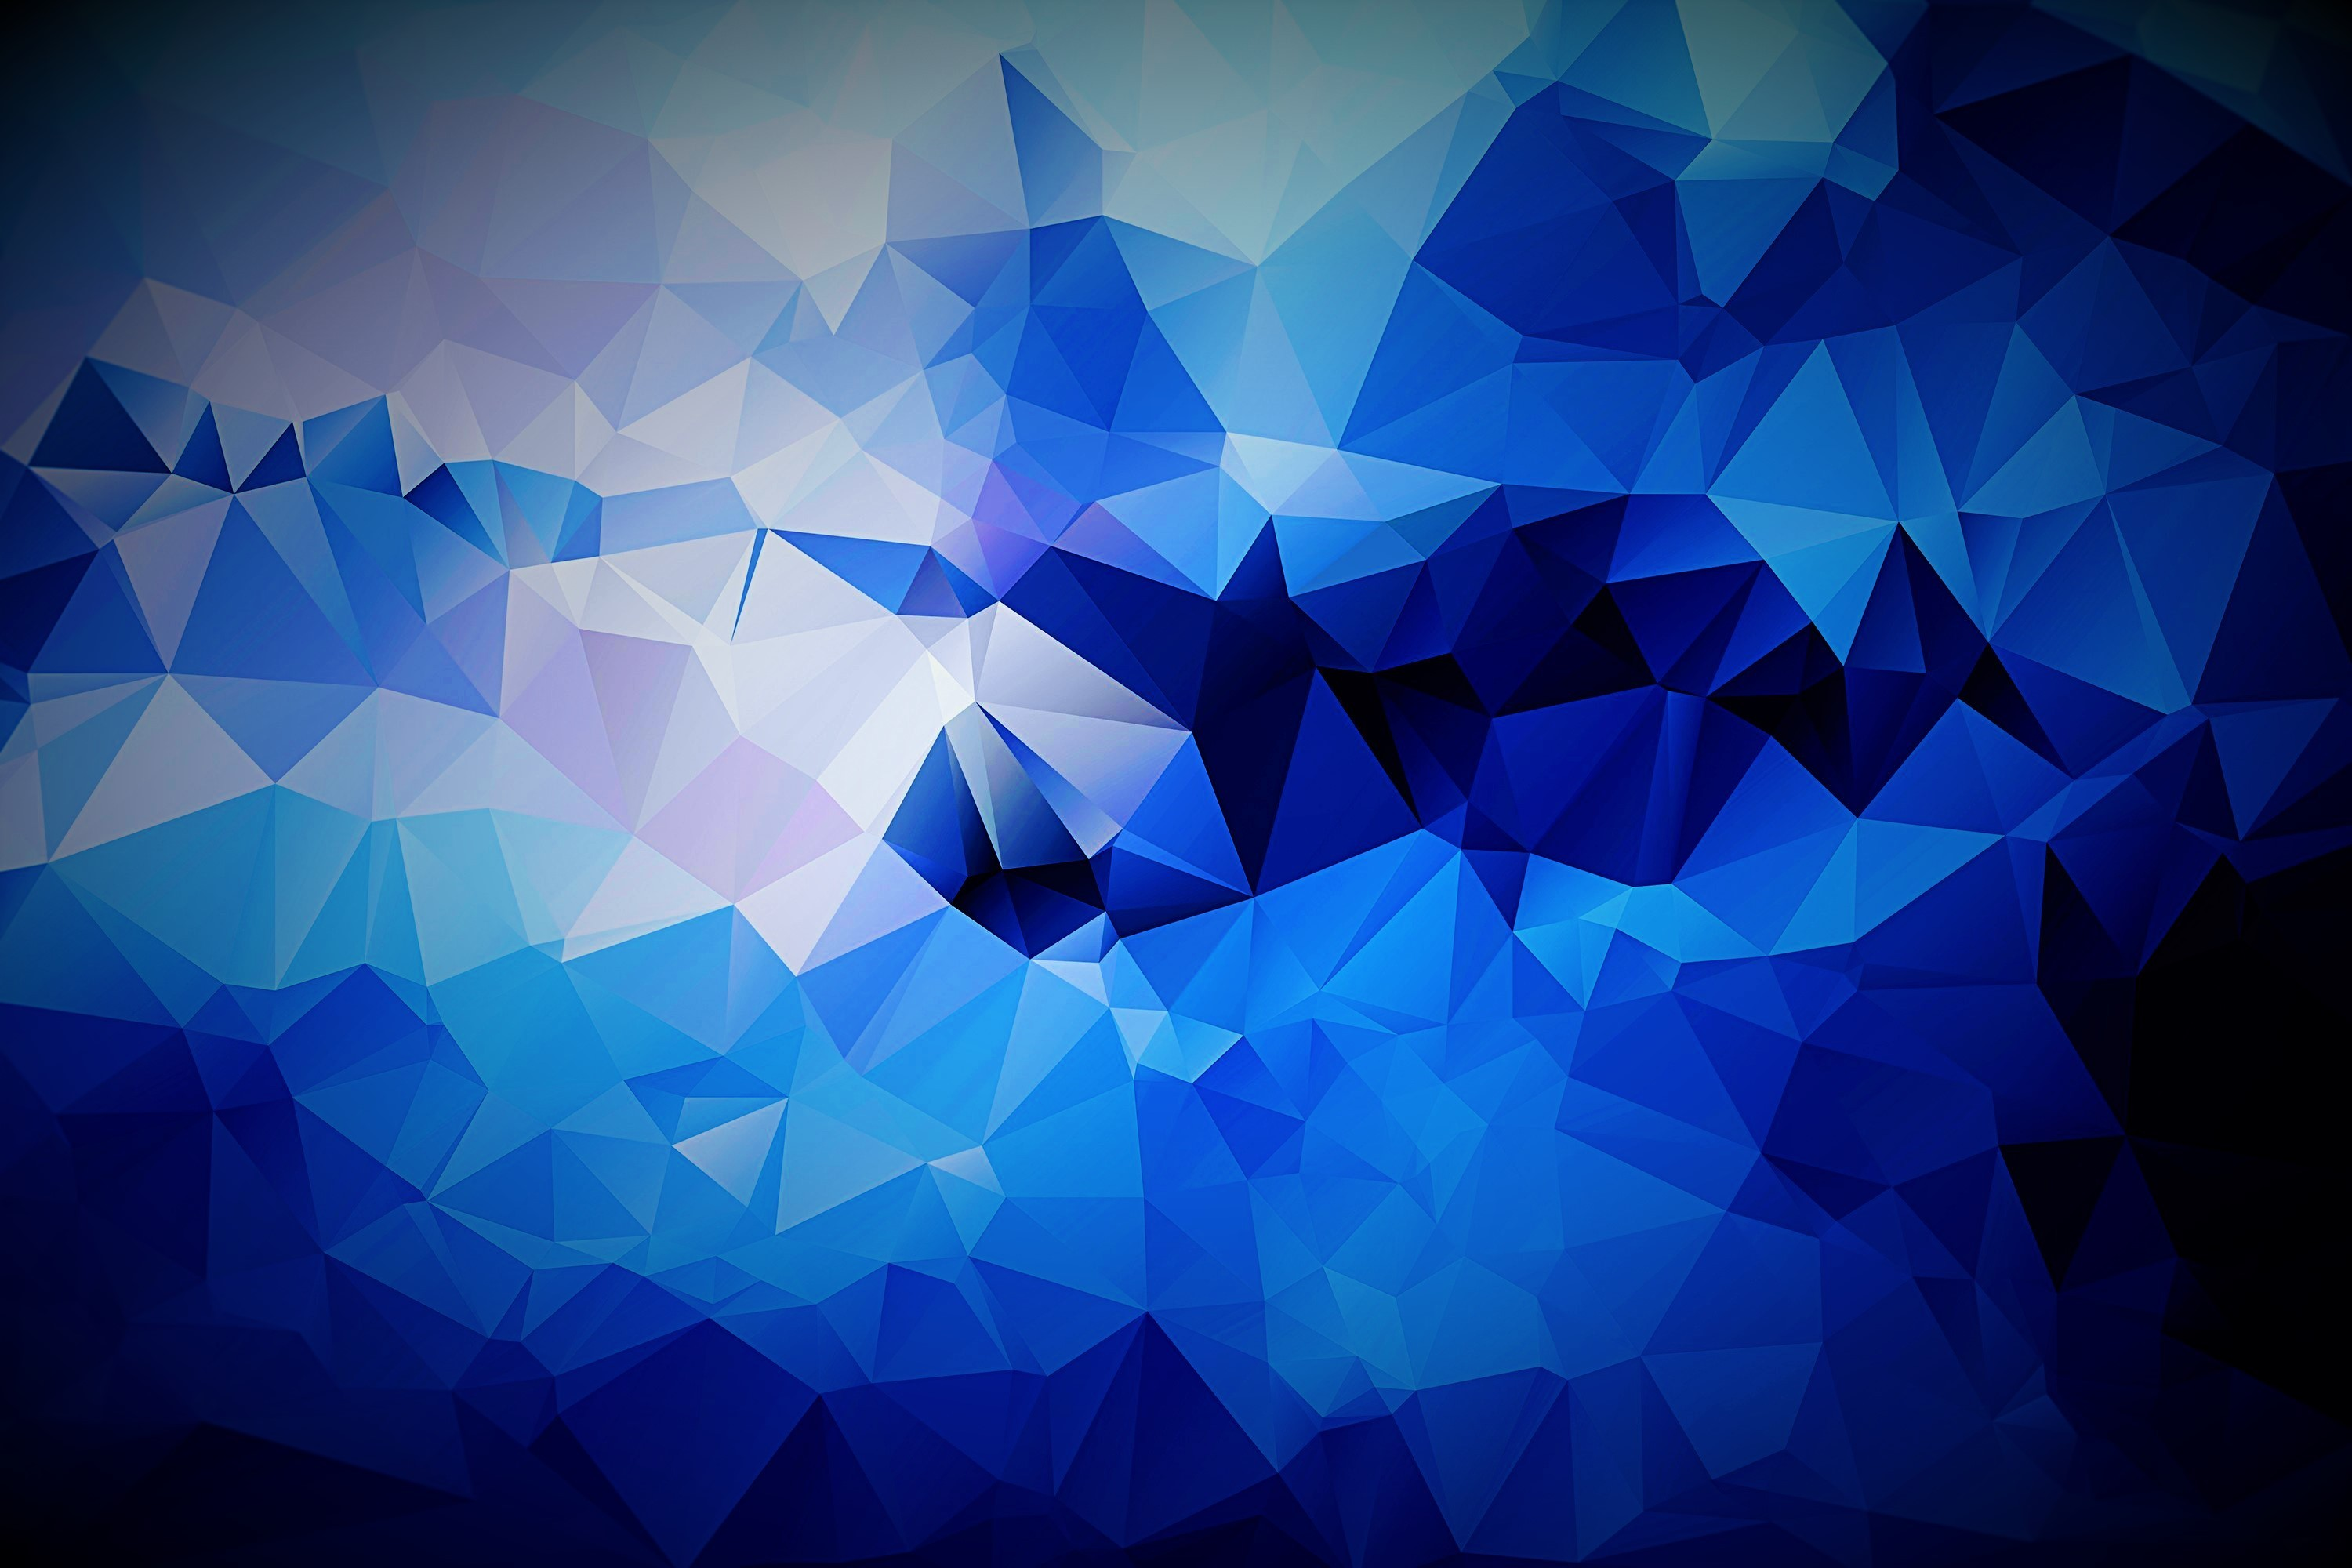 Blue Abstract Wallpaper (65+ images)